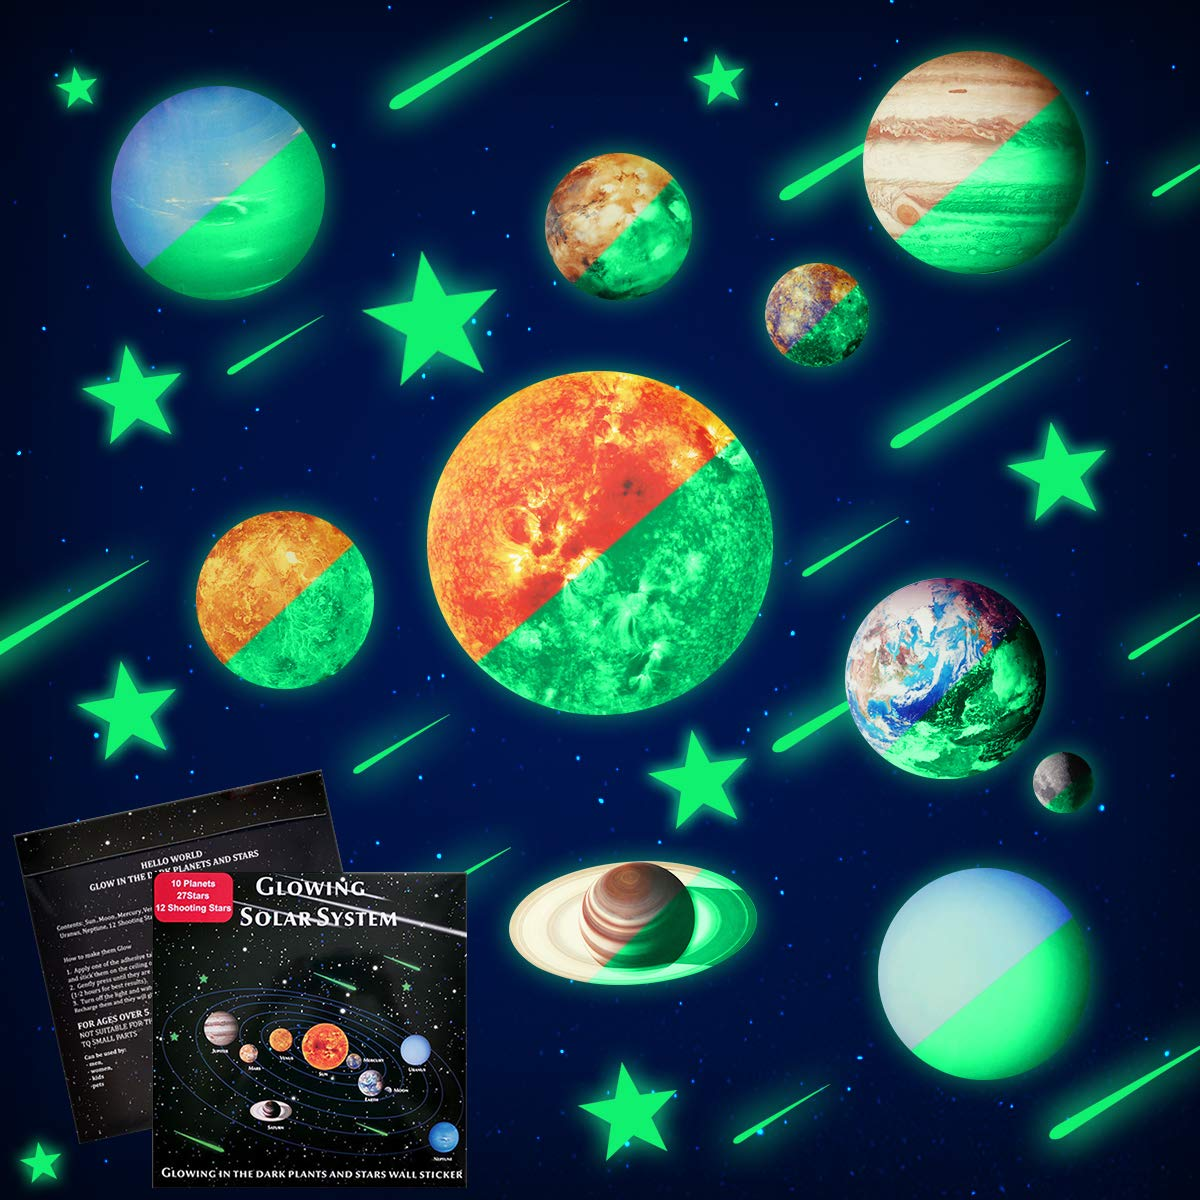 Glow In The Dark Stars And Planets Ceiling Wall Stickers Glowing Bright Solar System Wall Decals With 50pcs Planets Stars Shooting Stars For Kid Bedroom Living Room Buy Online In Dominica At